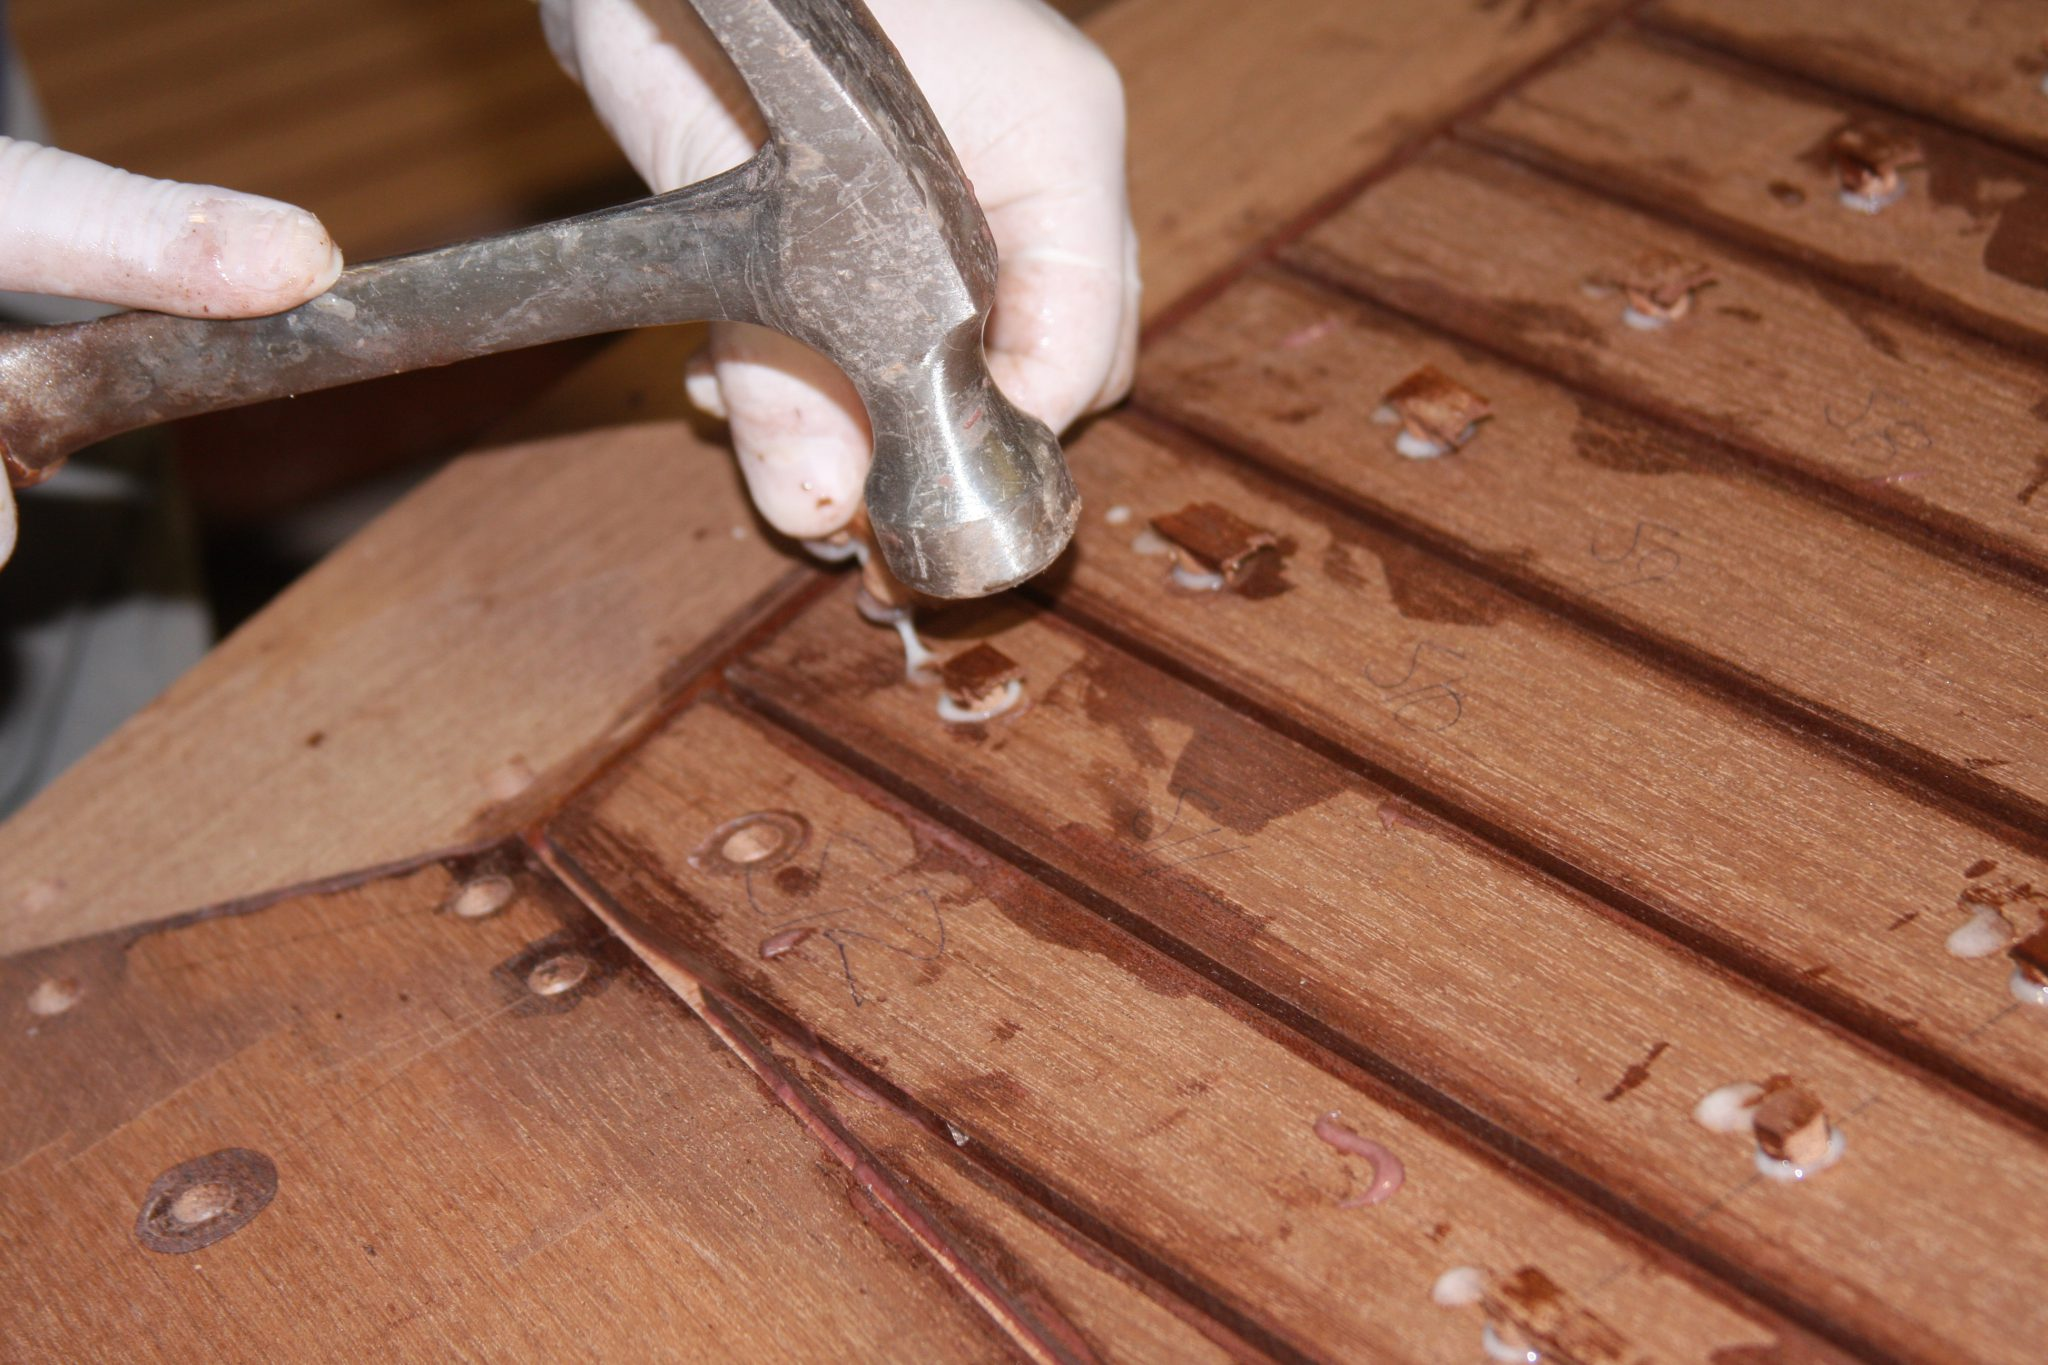 Filling screw holes with hand made mahogany plugs